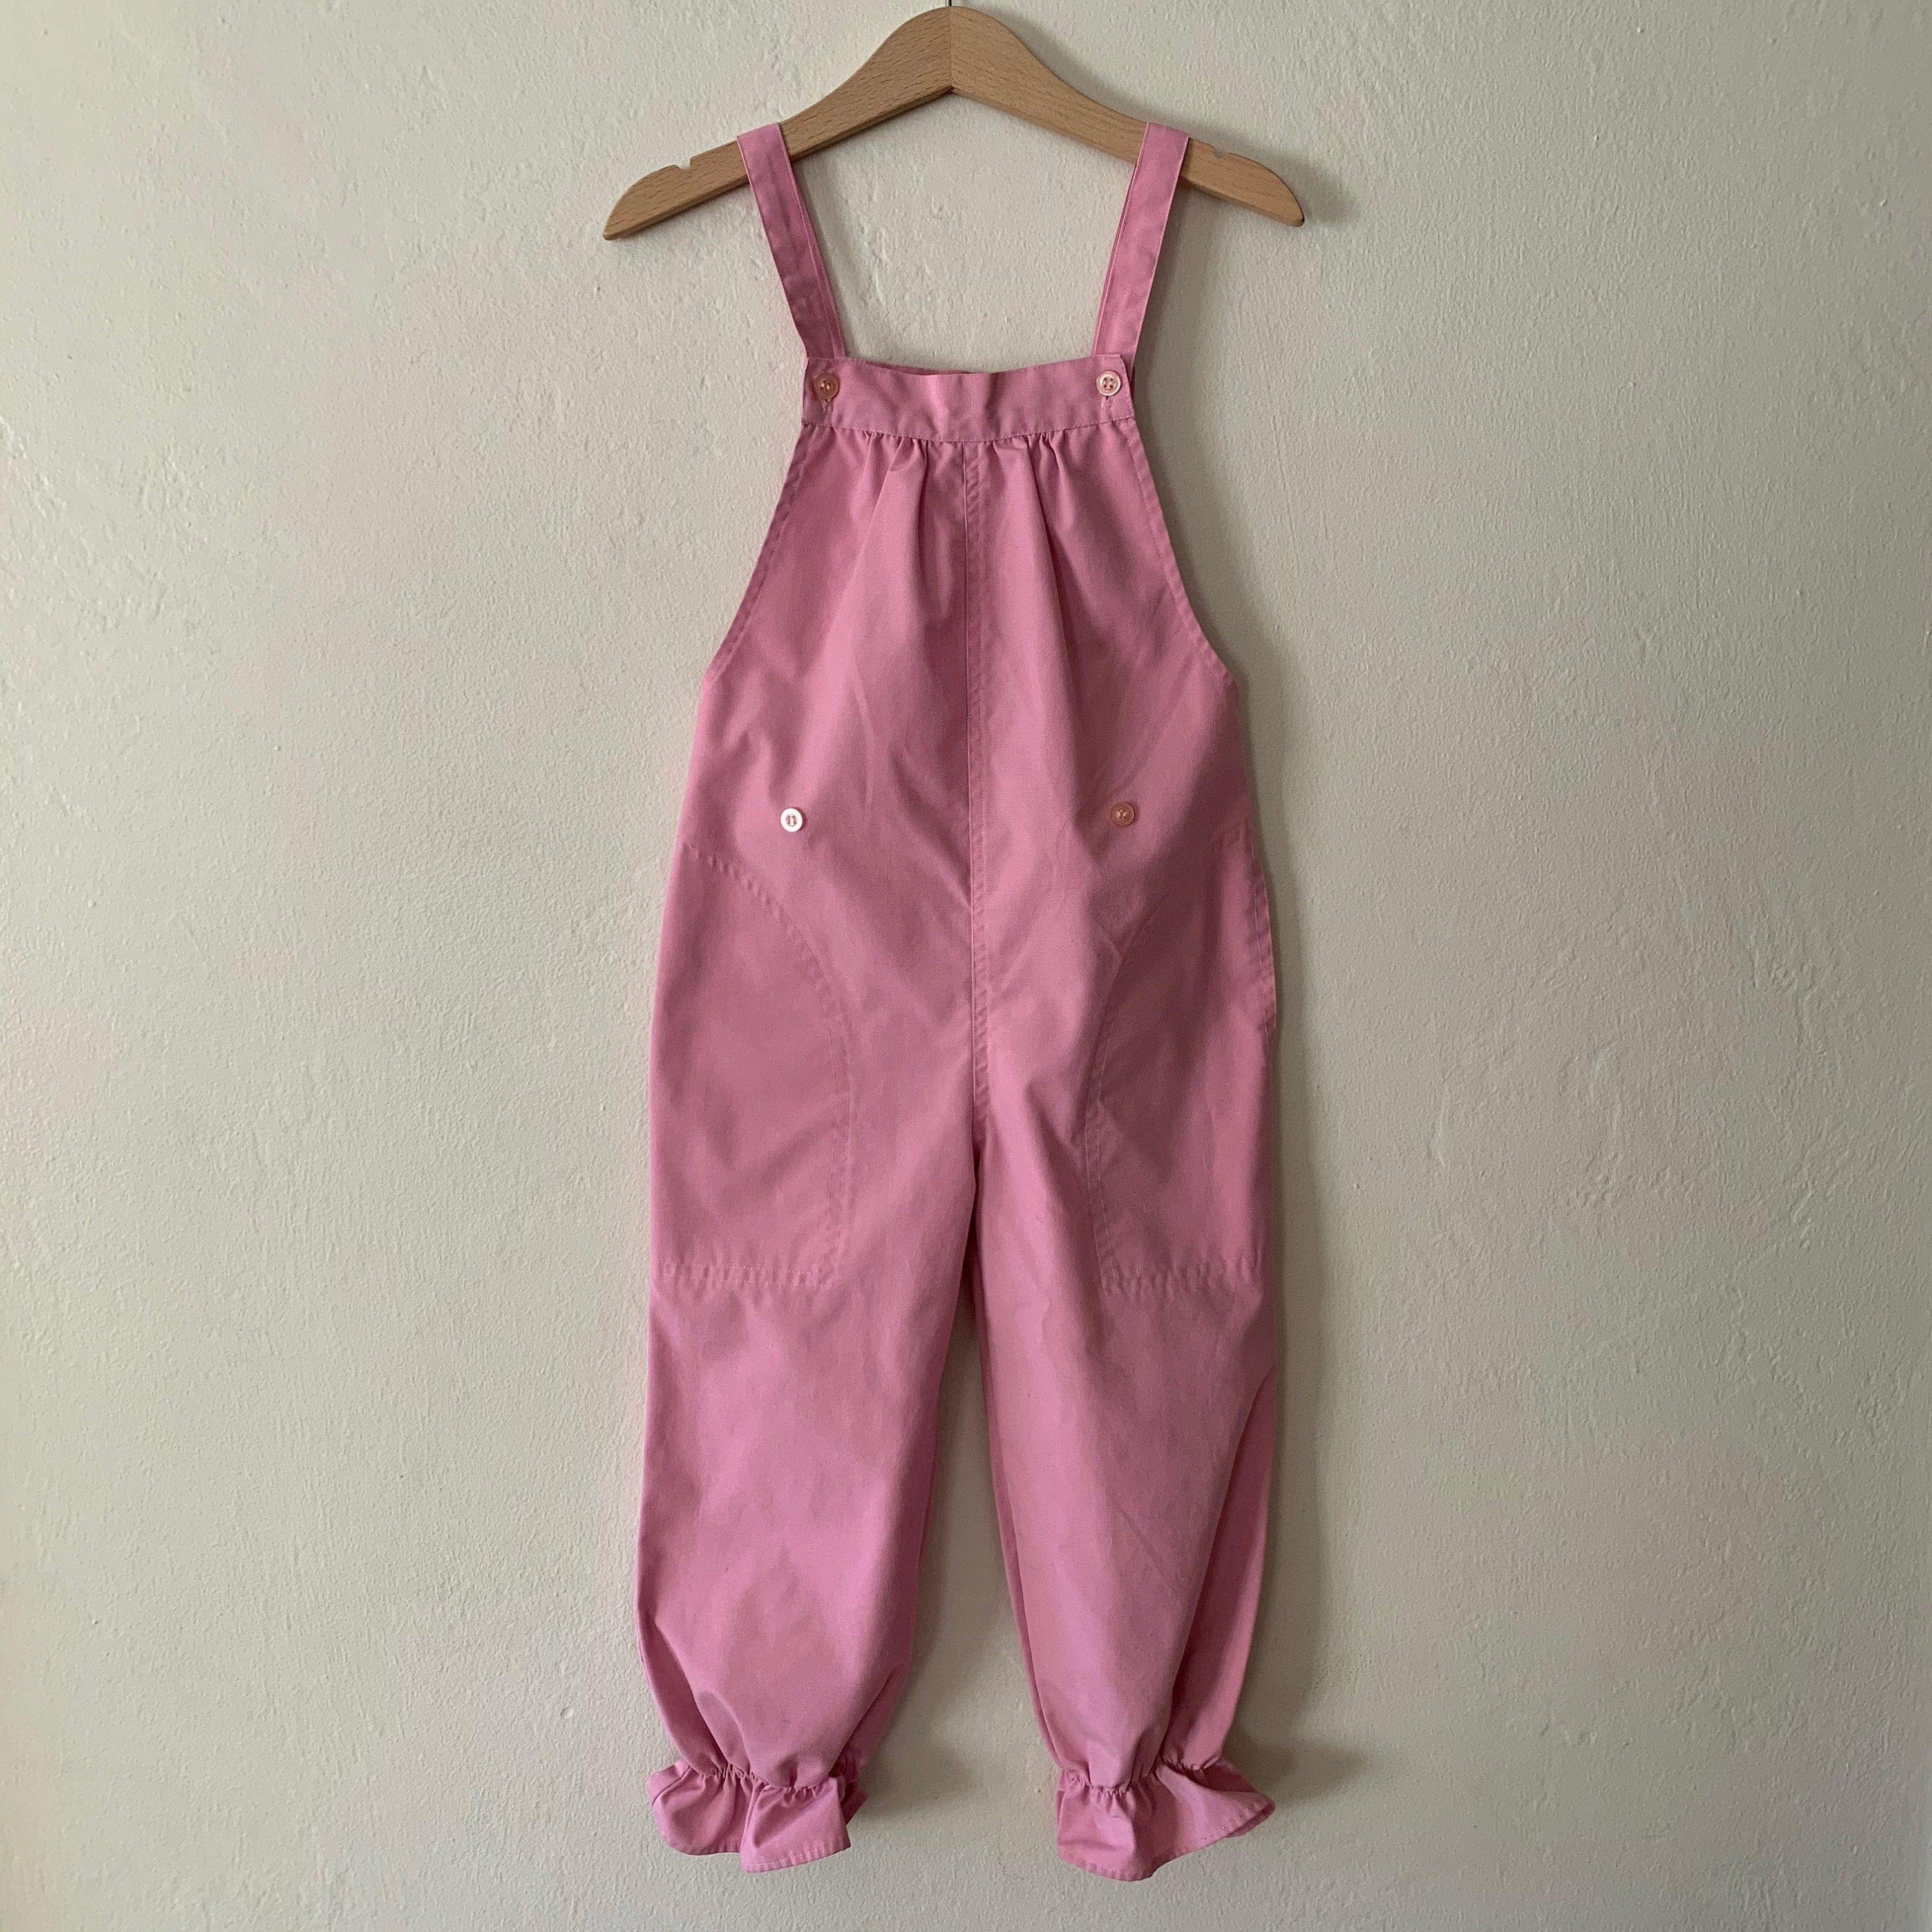 Vintage 80s Baby Clothes Bubble Romper Checked Overalls with Jacket Size 3-6 Months